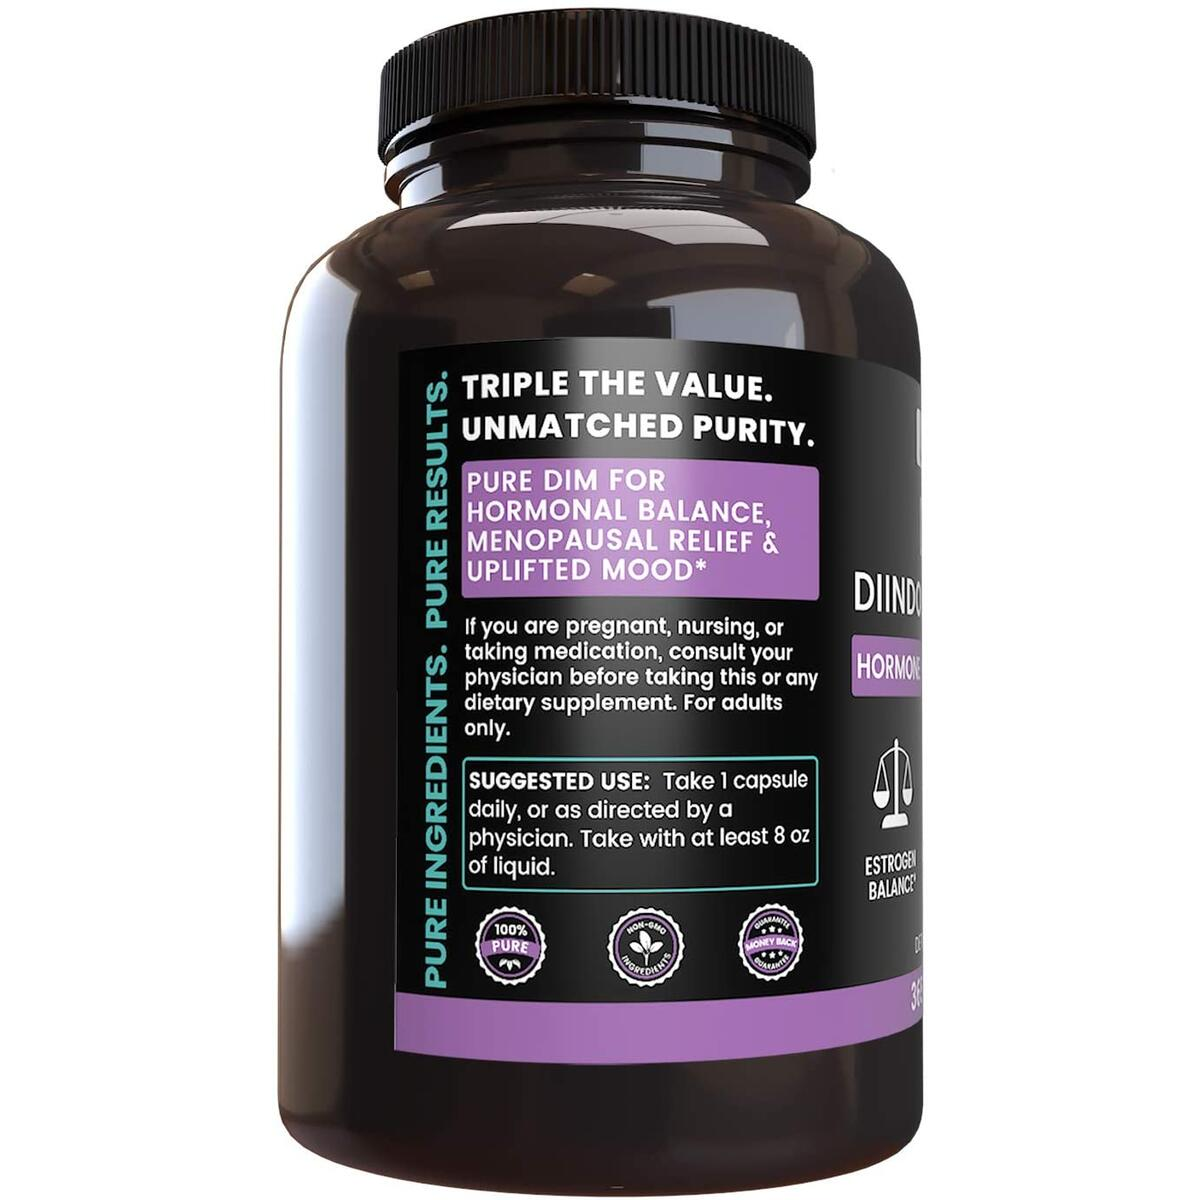 DIM Diindolylmethane, 365 Capsules, 1 Year Supply, No Magnesium or Rice Filler, Non-GMO, Gluten-Free, Made in USA, High Absorption, Undiluted Diindolylmethane with No Additives